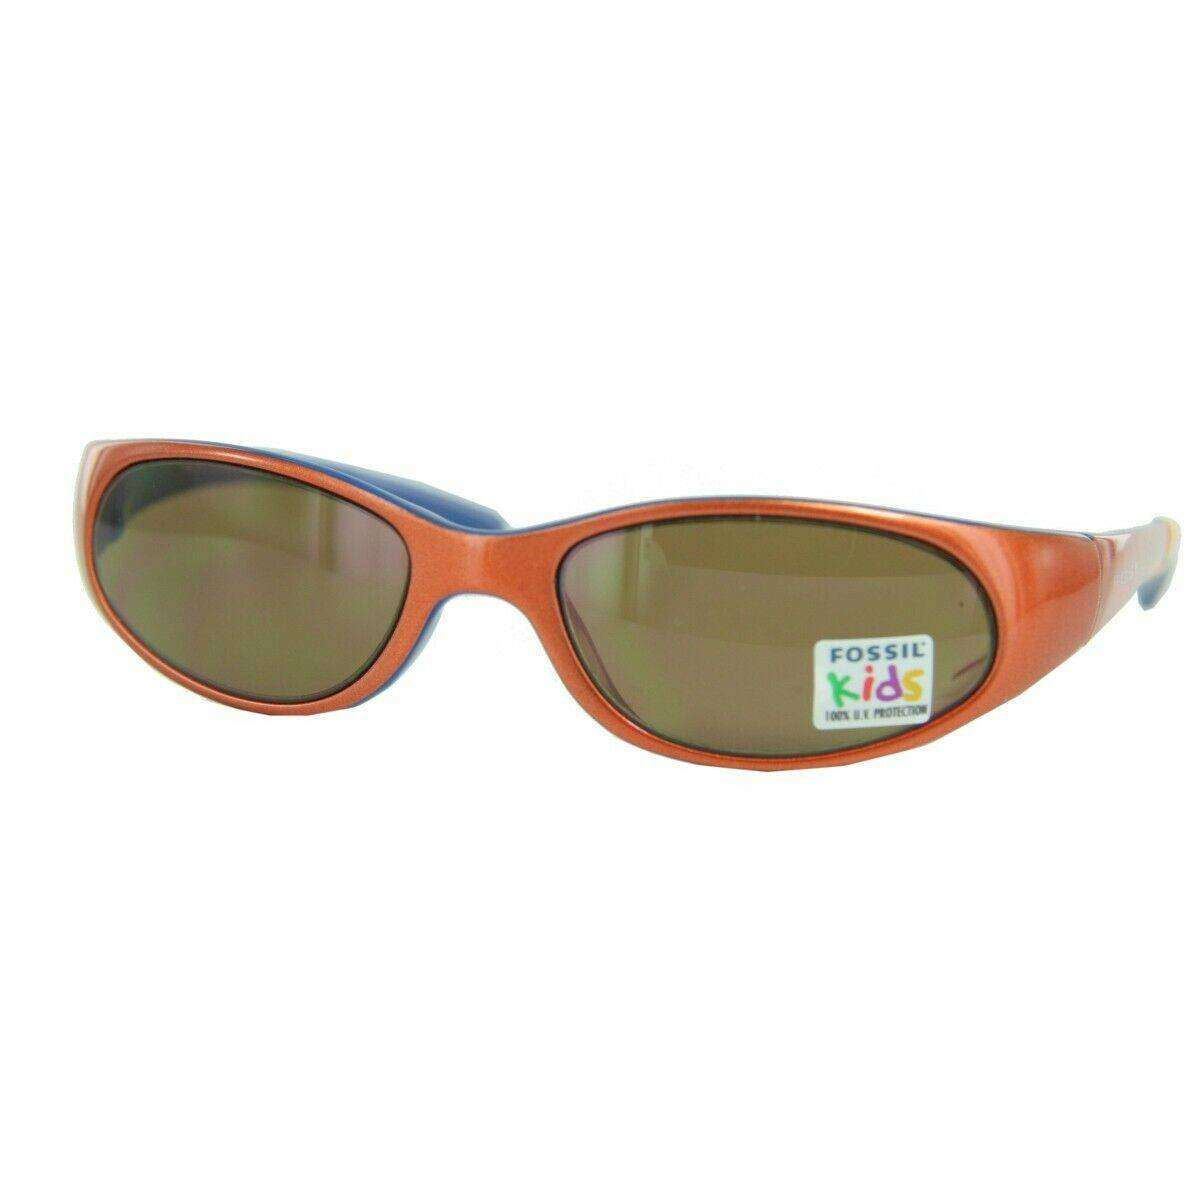 Fossil Kids Occhiali da Sole Tweeny Orange